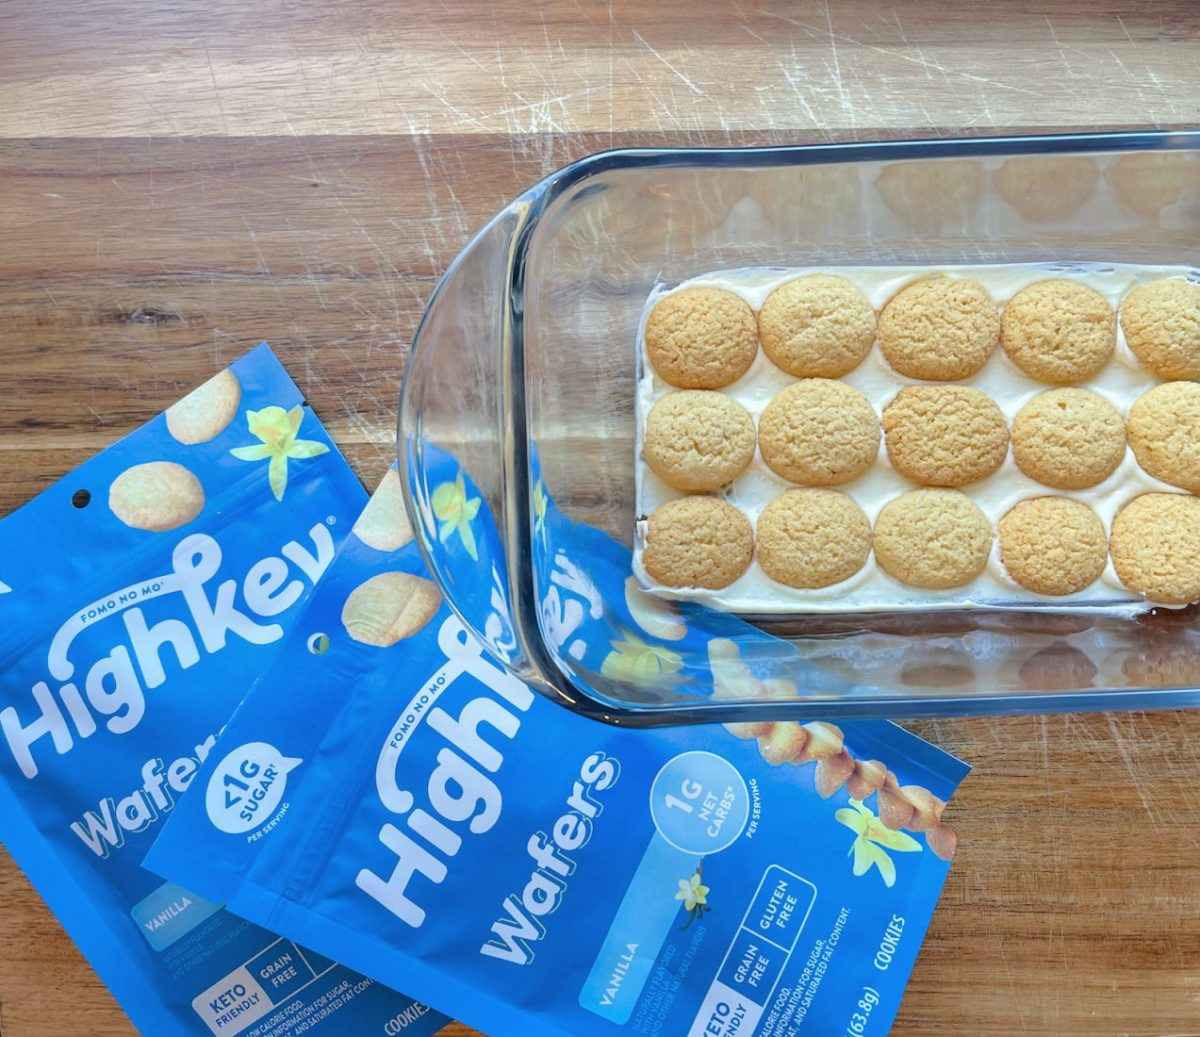 keto cookies on top of eclair cake in glass baking dish